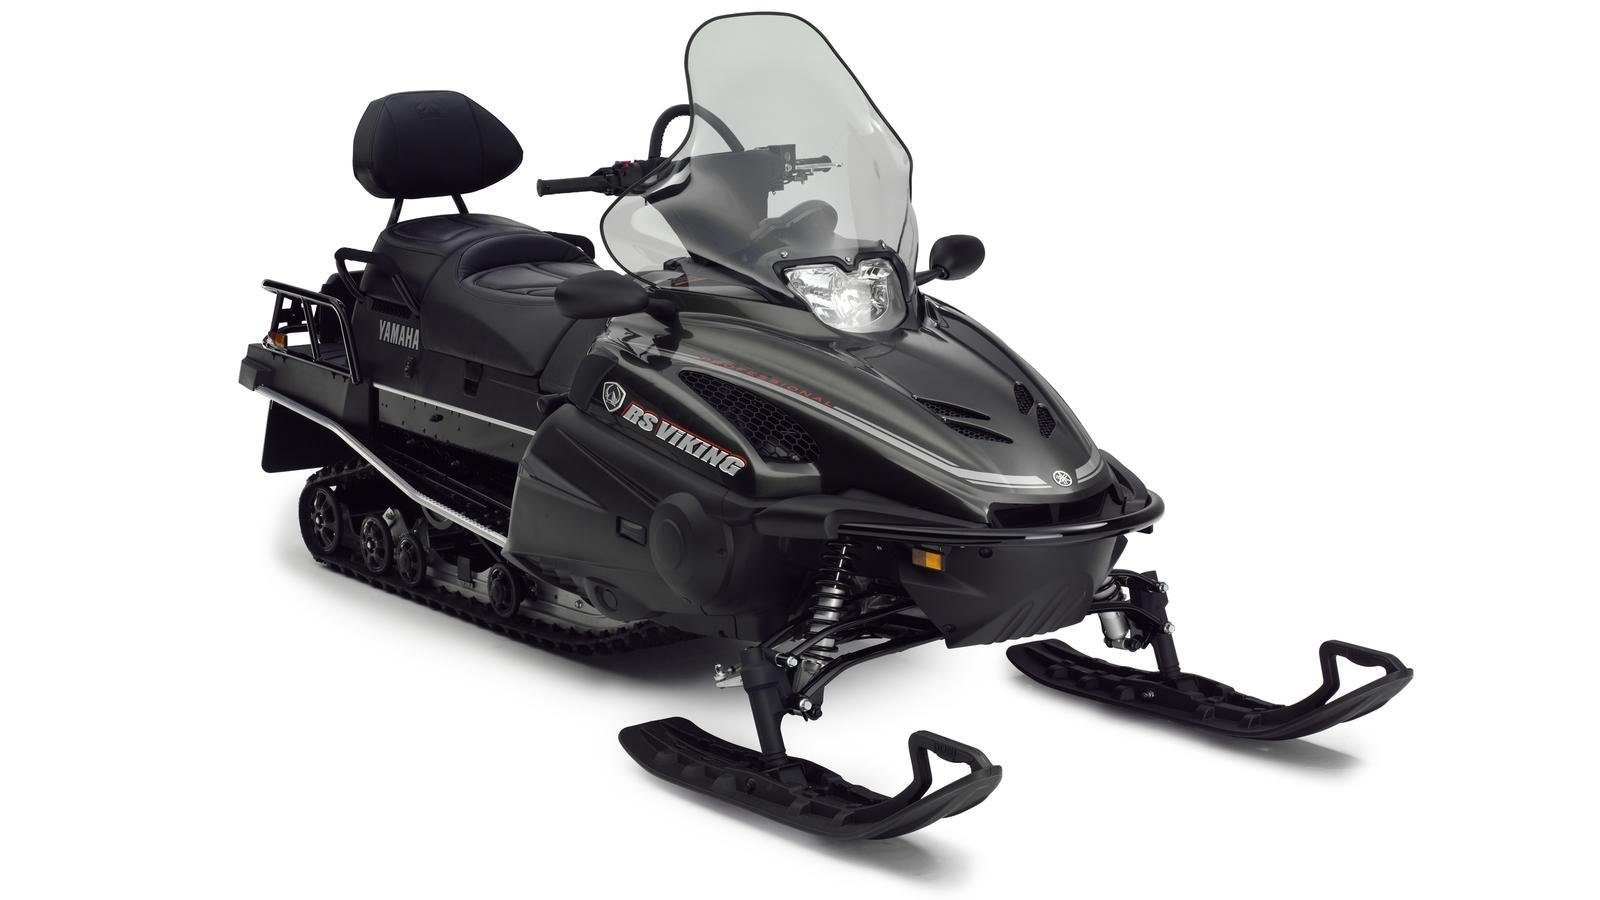 2013 yamaha rs viking professional review top speed